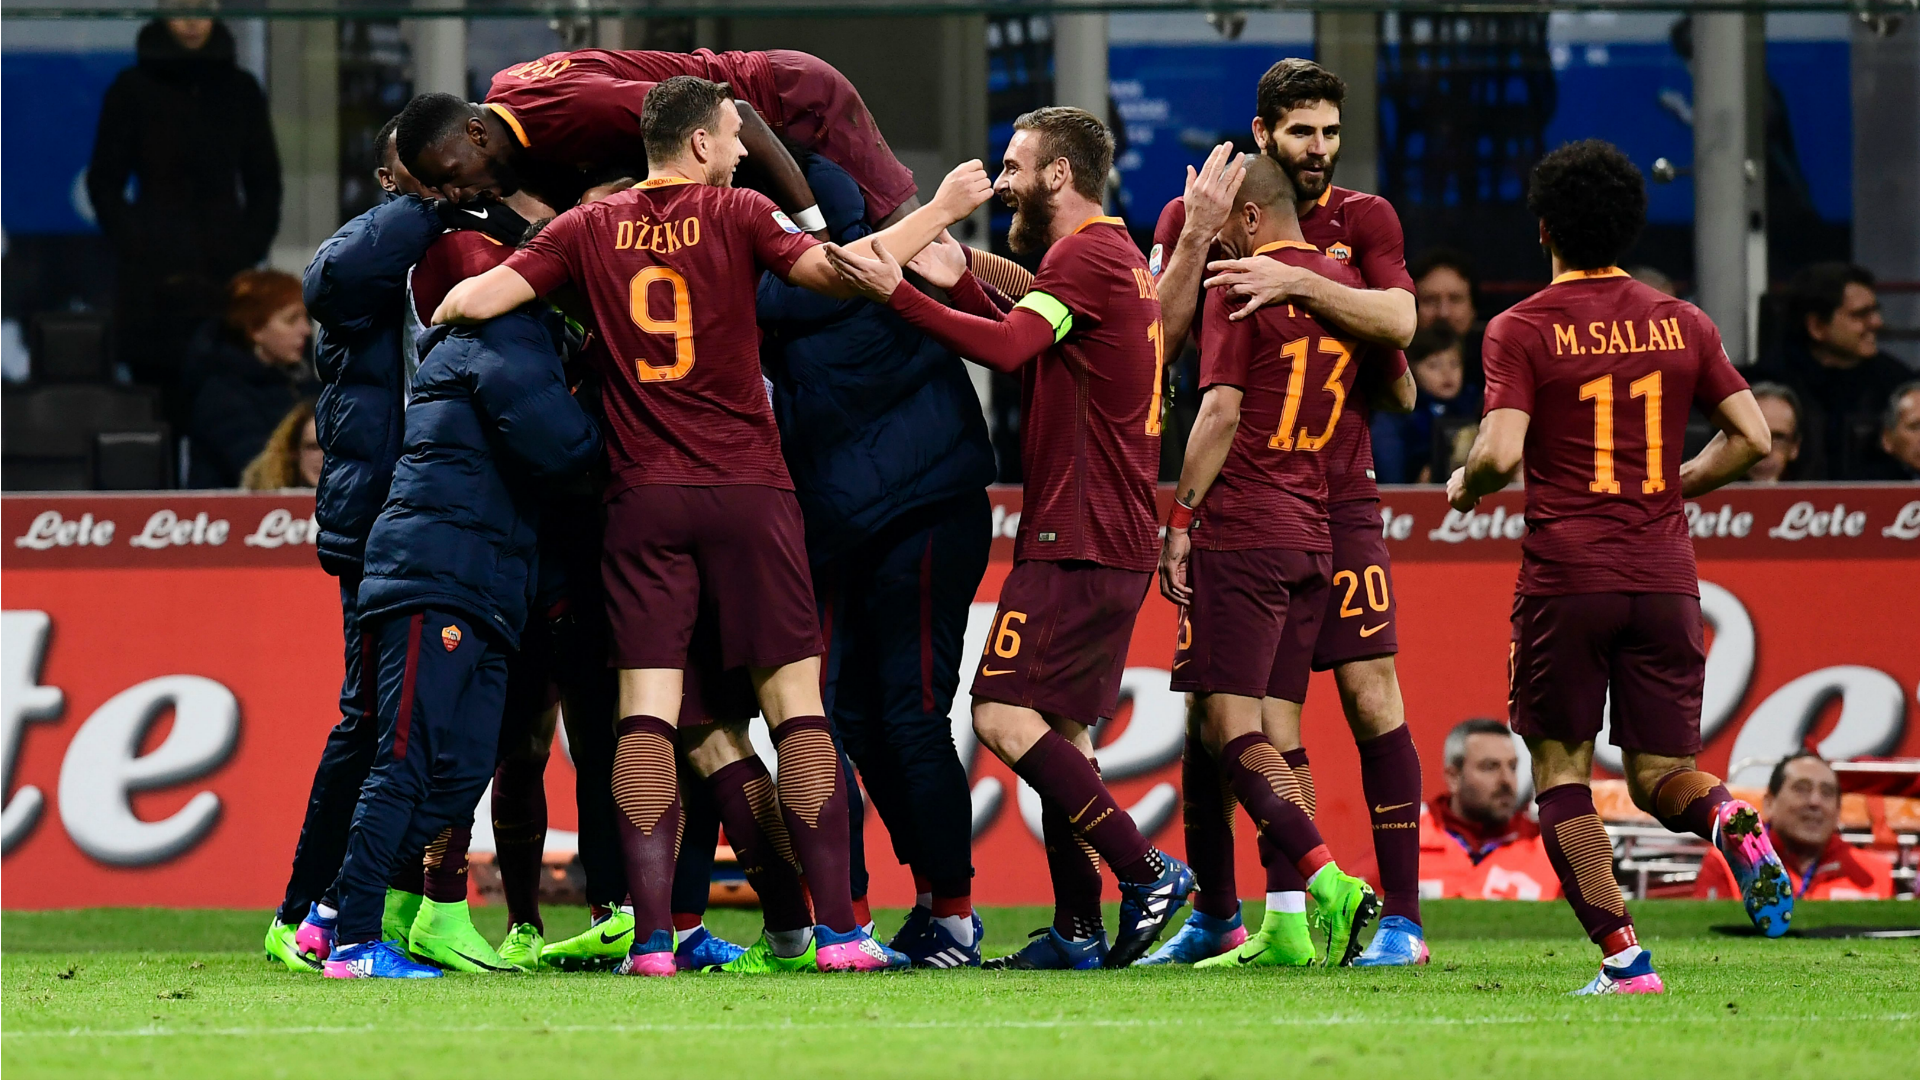 fc internazionale milano v as roma match report 26 02 2017 serie roma players celebrating vs inter serie a 26022017